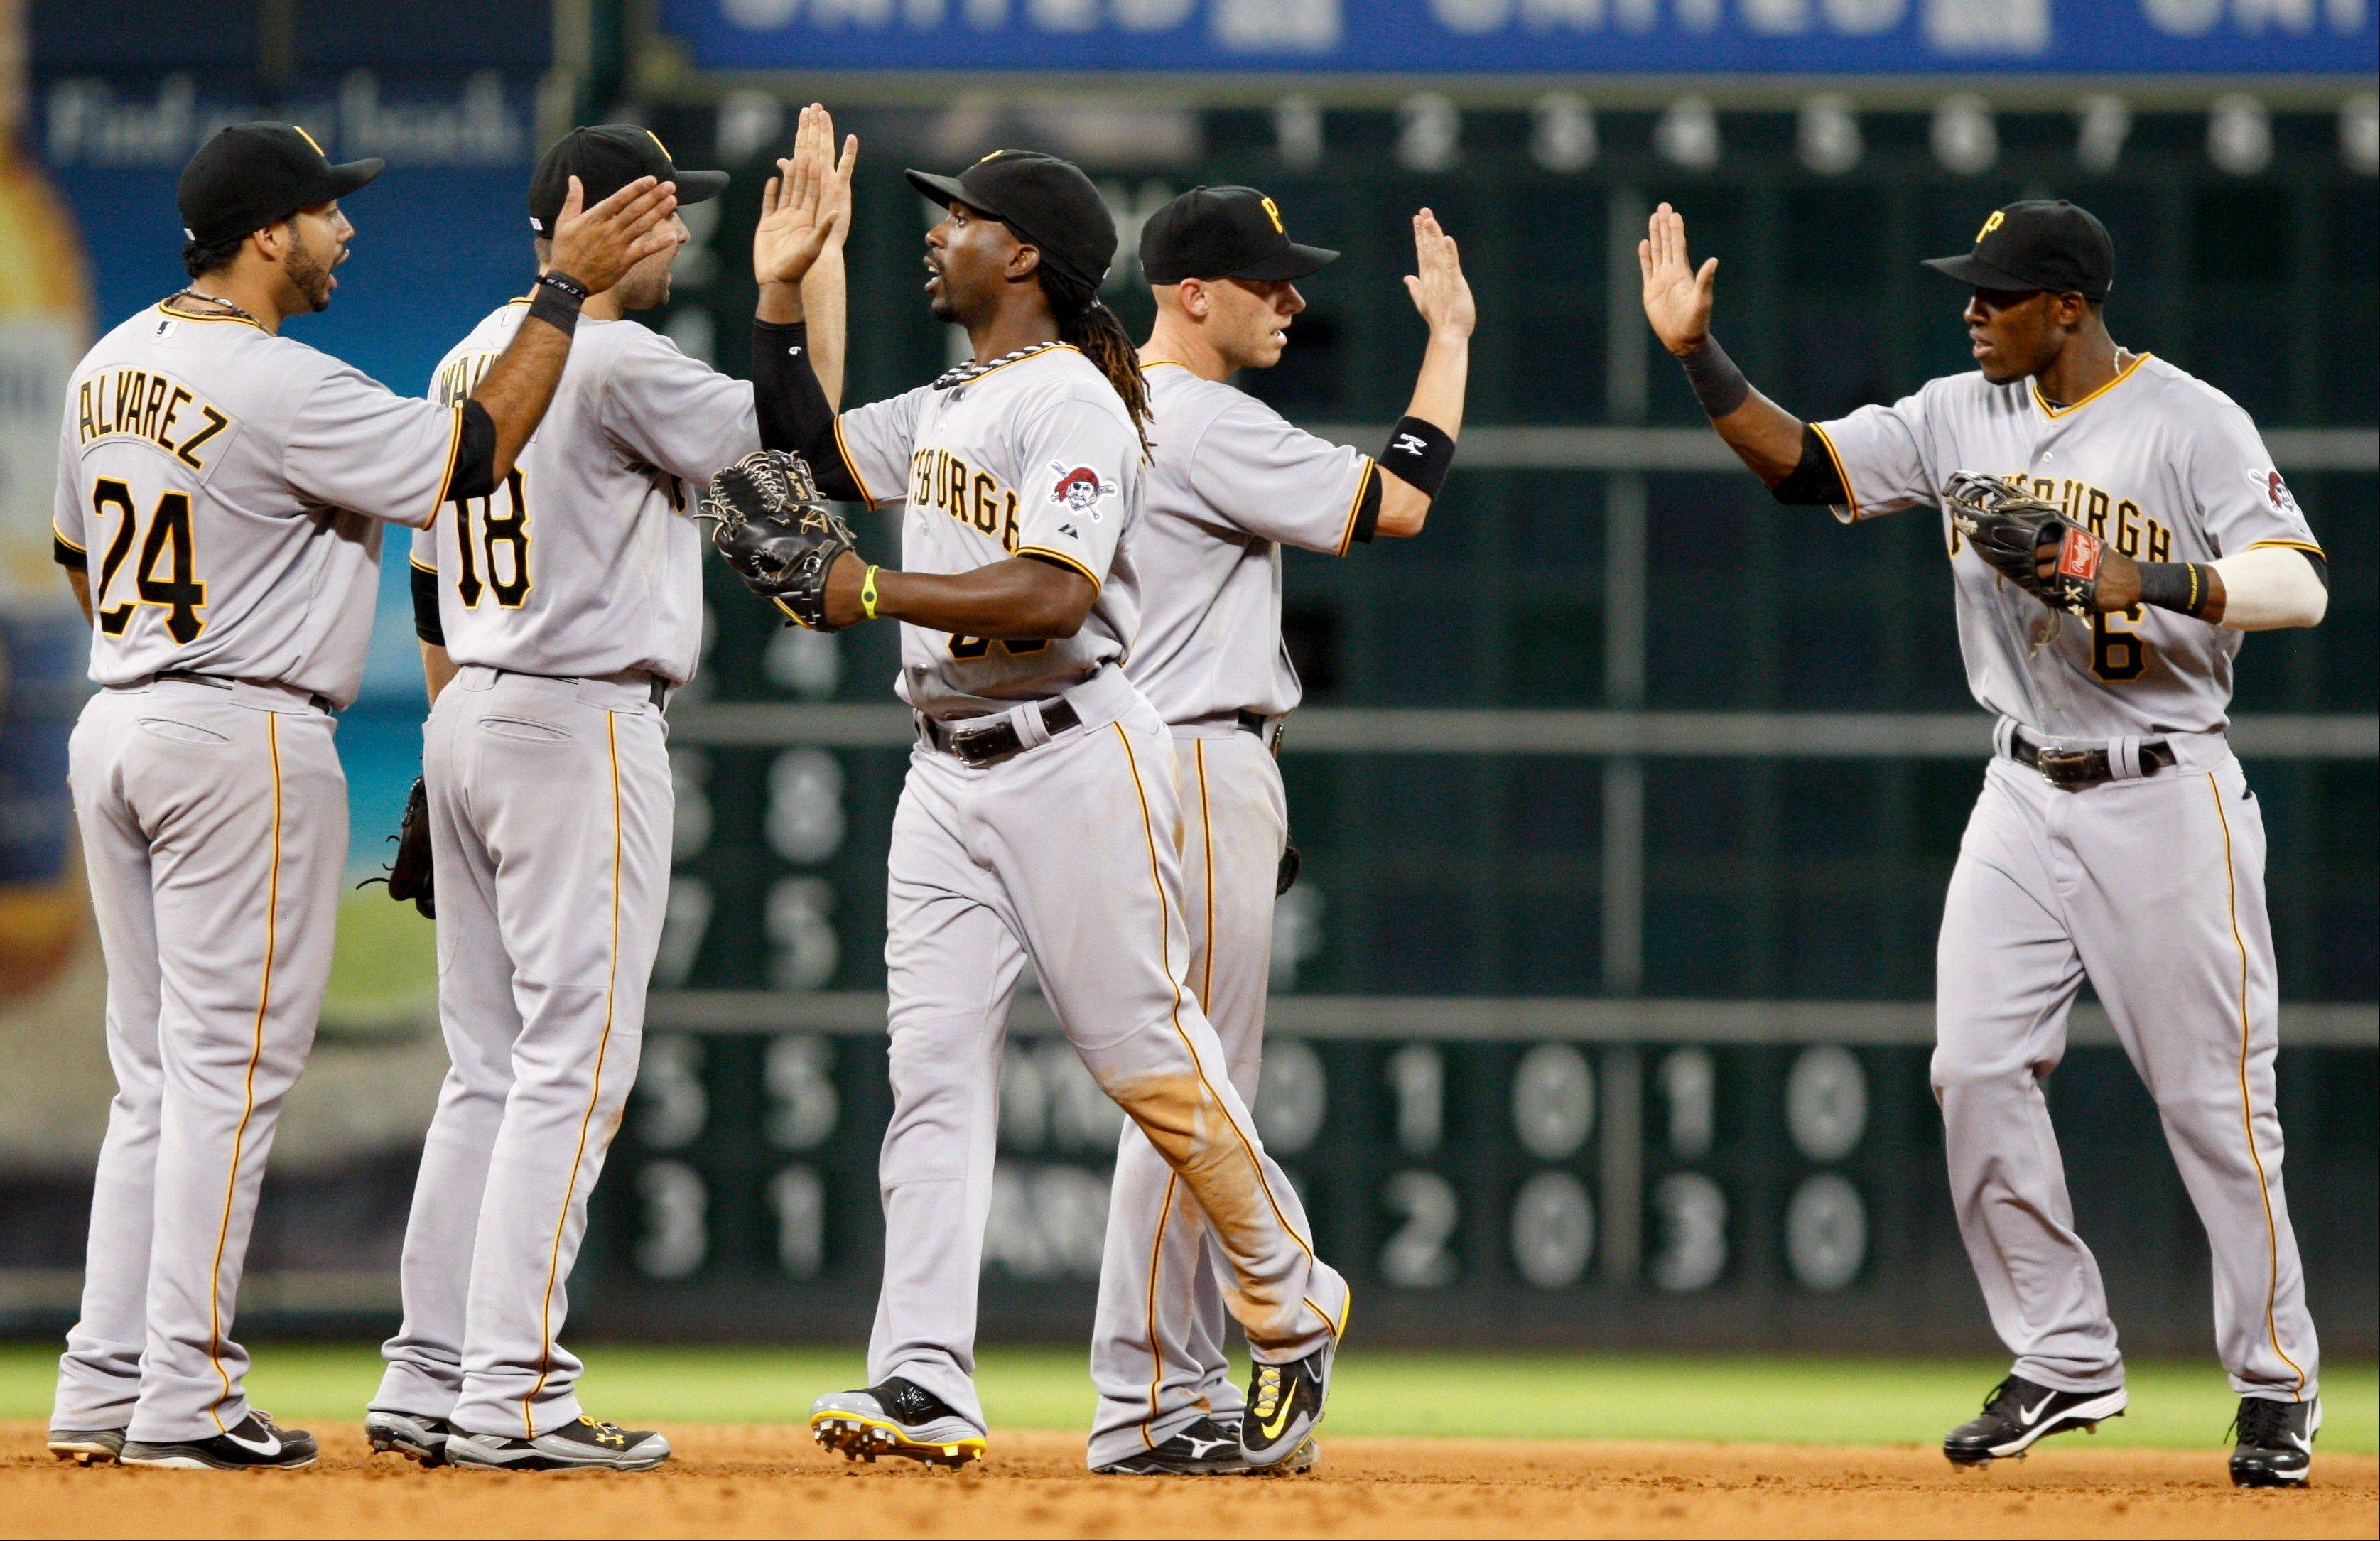 The Pittsburgh Pirates celebrate their win over the Astros Saturday in Houston.